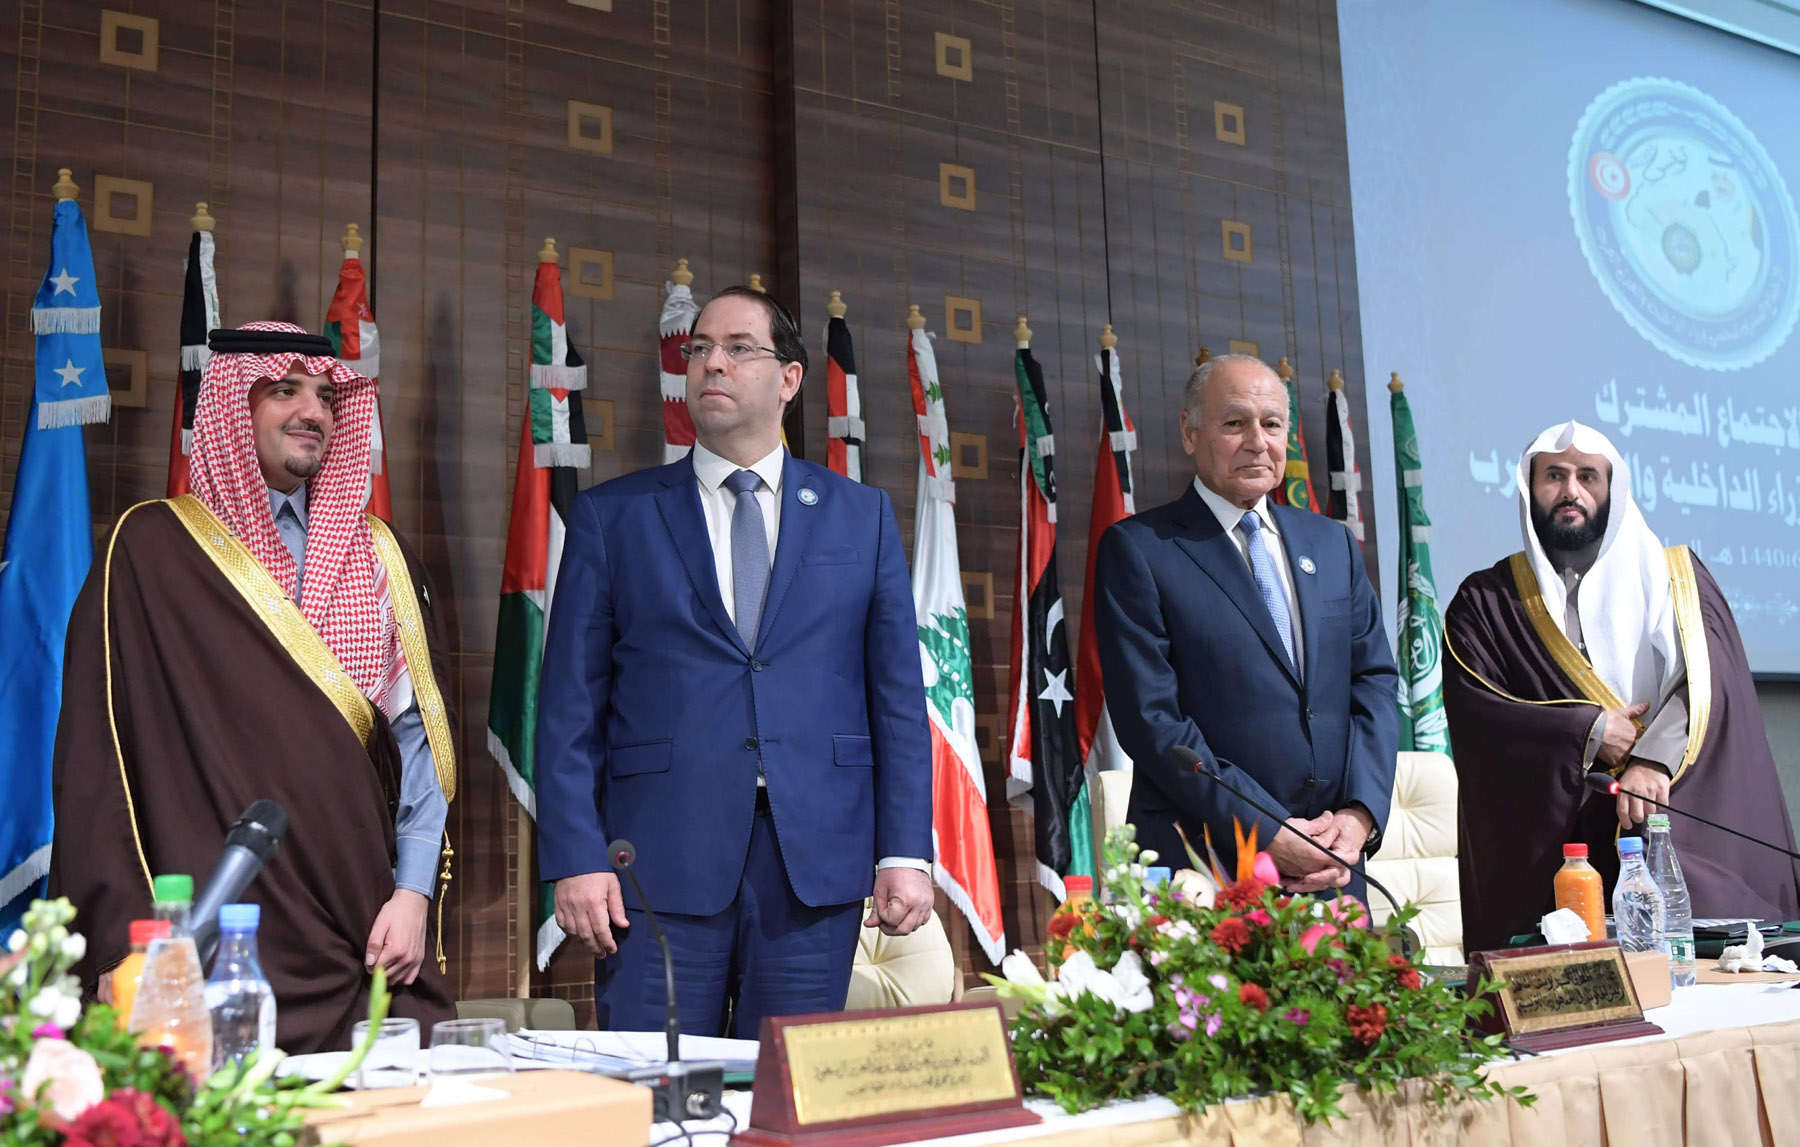 Saudi Minister of Interior Abdulaziz bin Saud bin Nayef (L), Tunisian Prime Minister Youssef Chahed (2nd-L), Arab League Secretary-General Ahmed Aboul Gheit (2nd-R) and Saudi Minister of Justice Waleed al-Samaani attend the opening session of a meeting of Arab Interior and Justice Ministers in Tunis, March 4. (AFP)